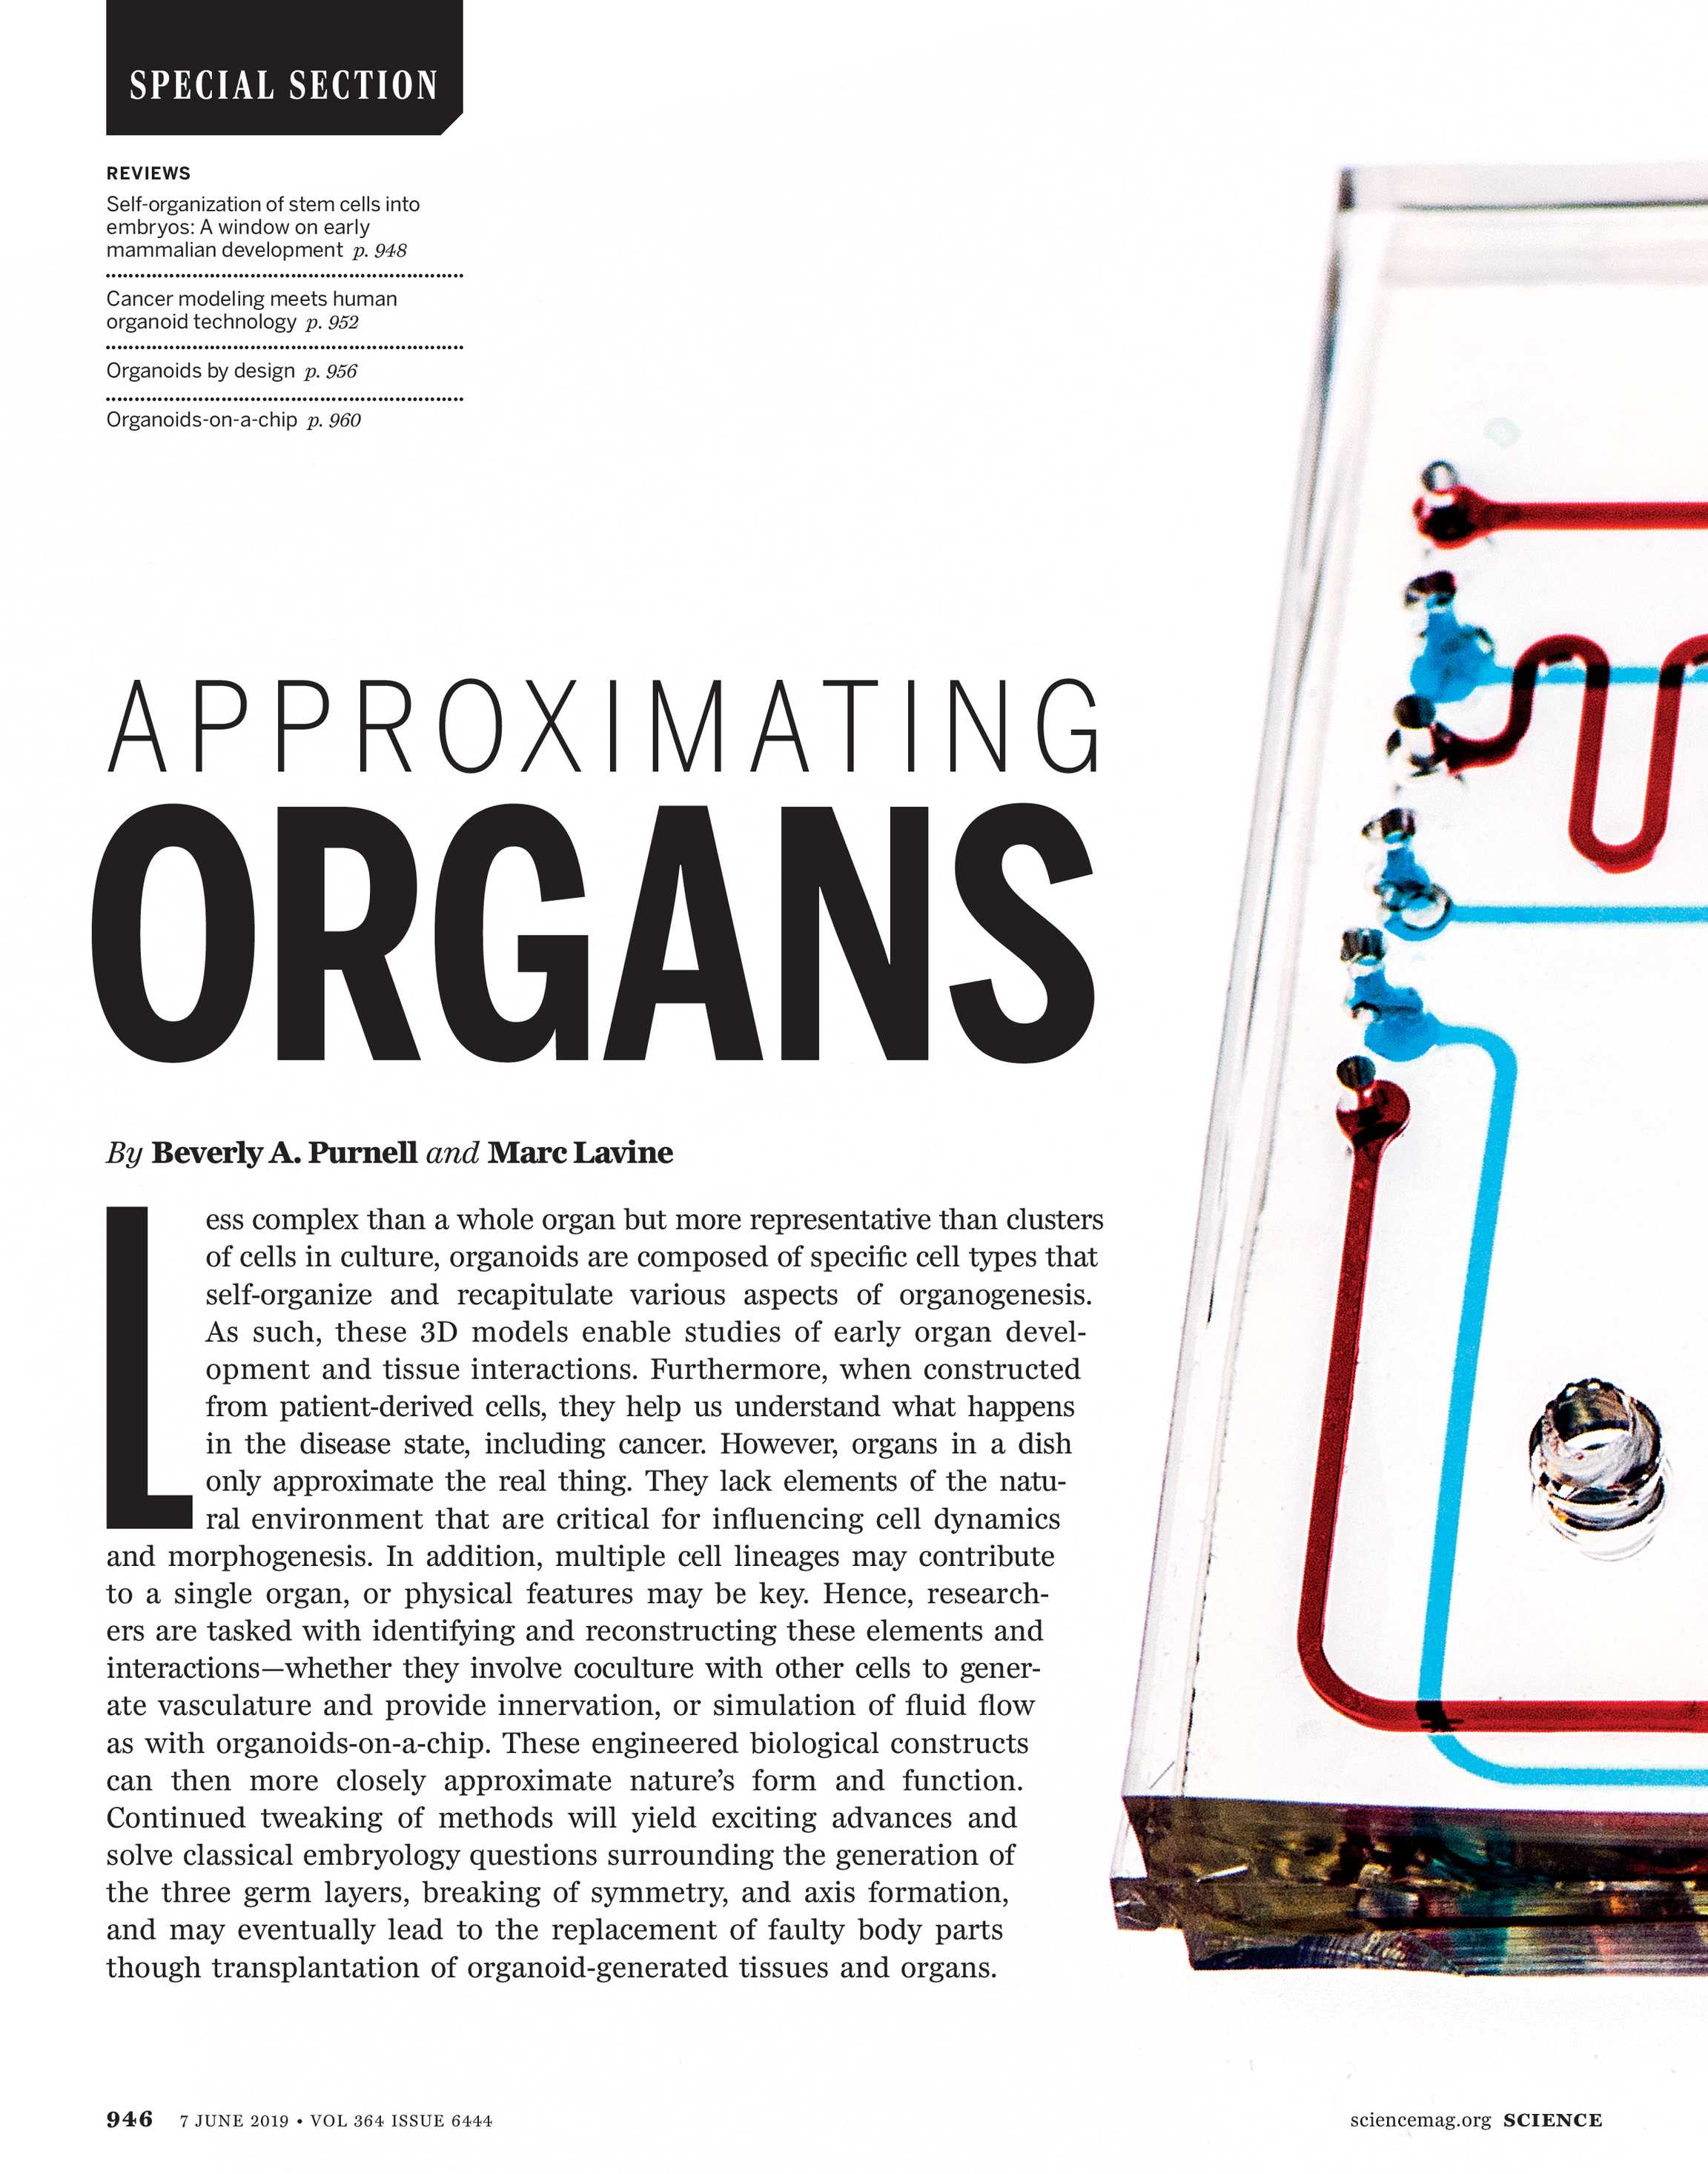 Science Magazine - June 7, 2019 - page 945